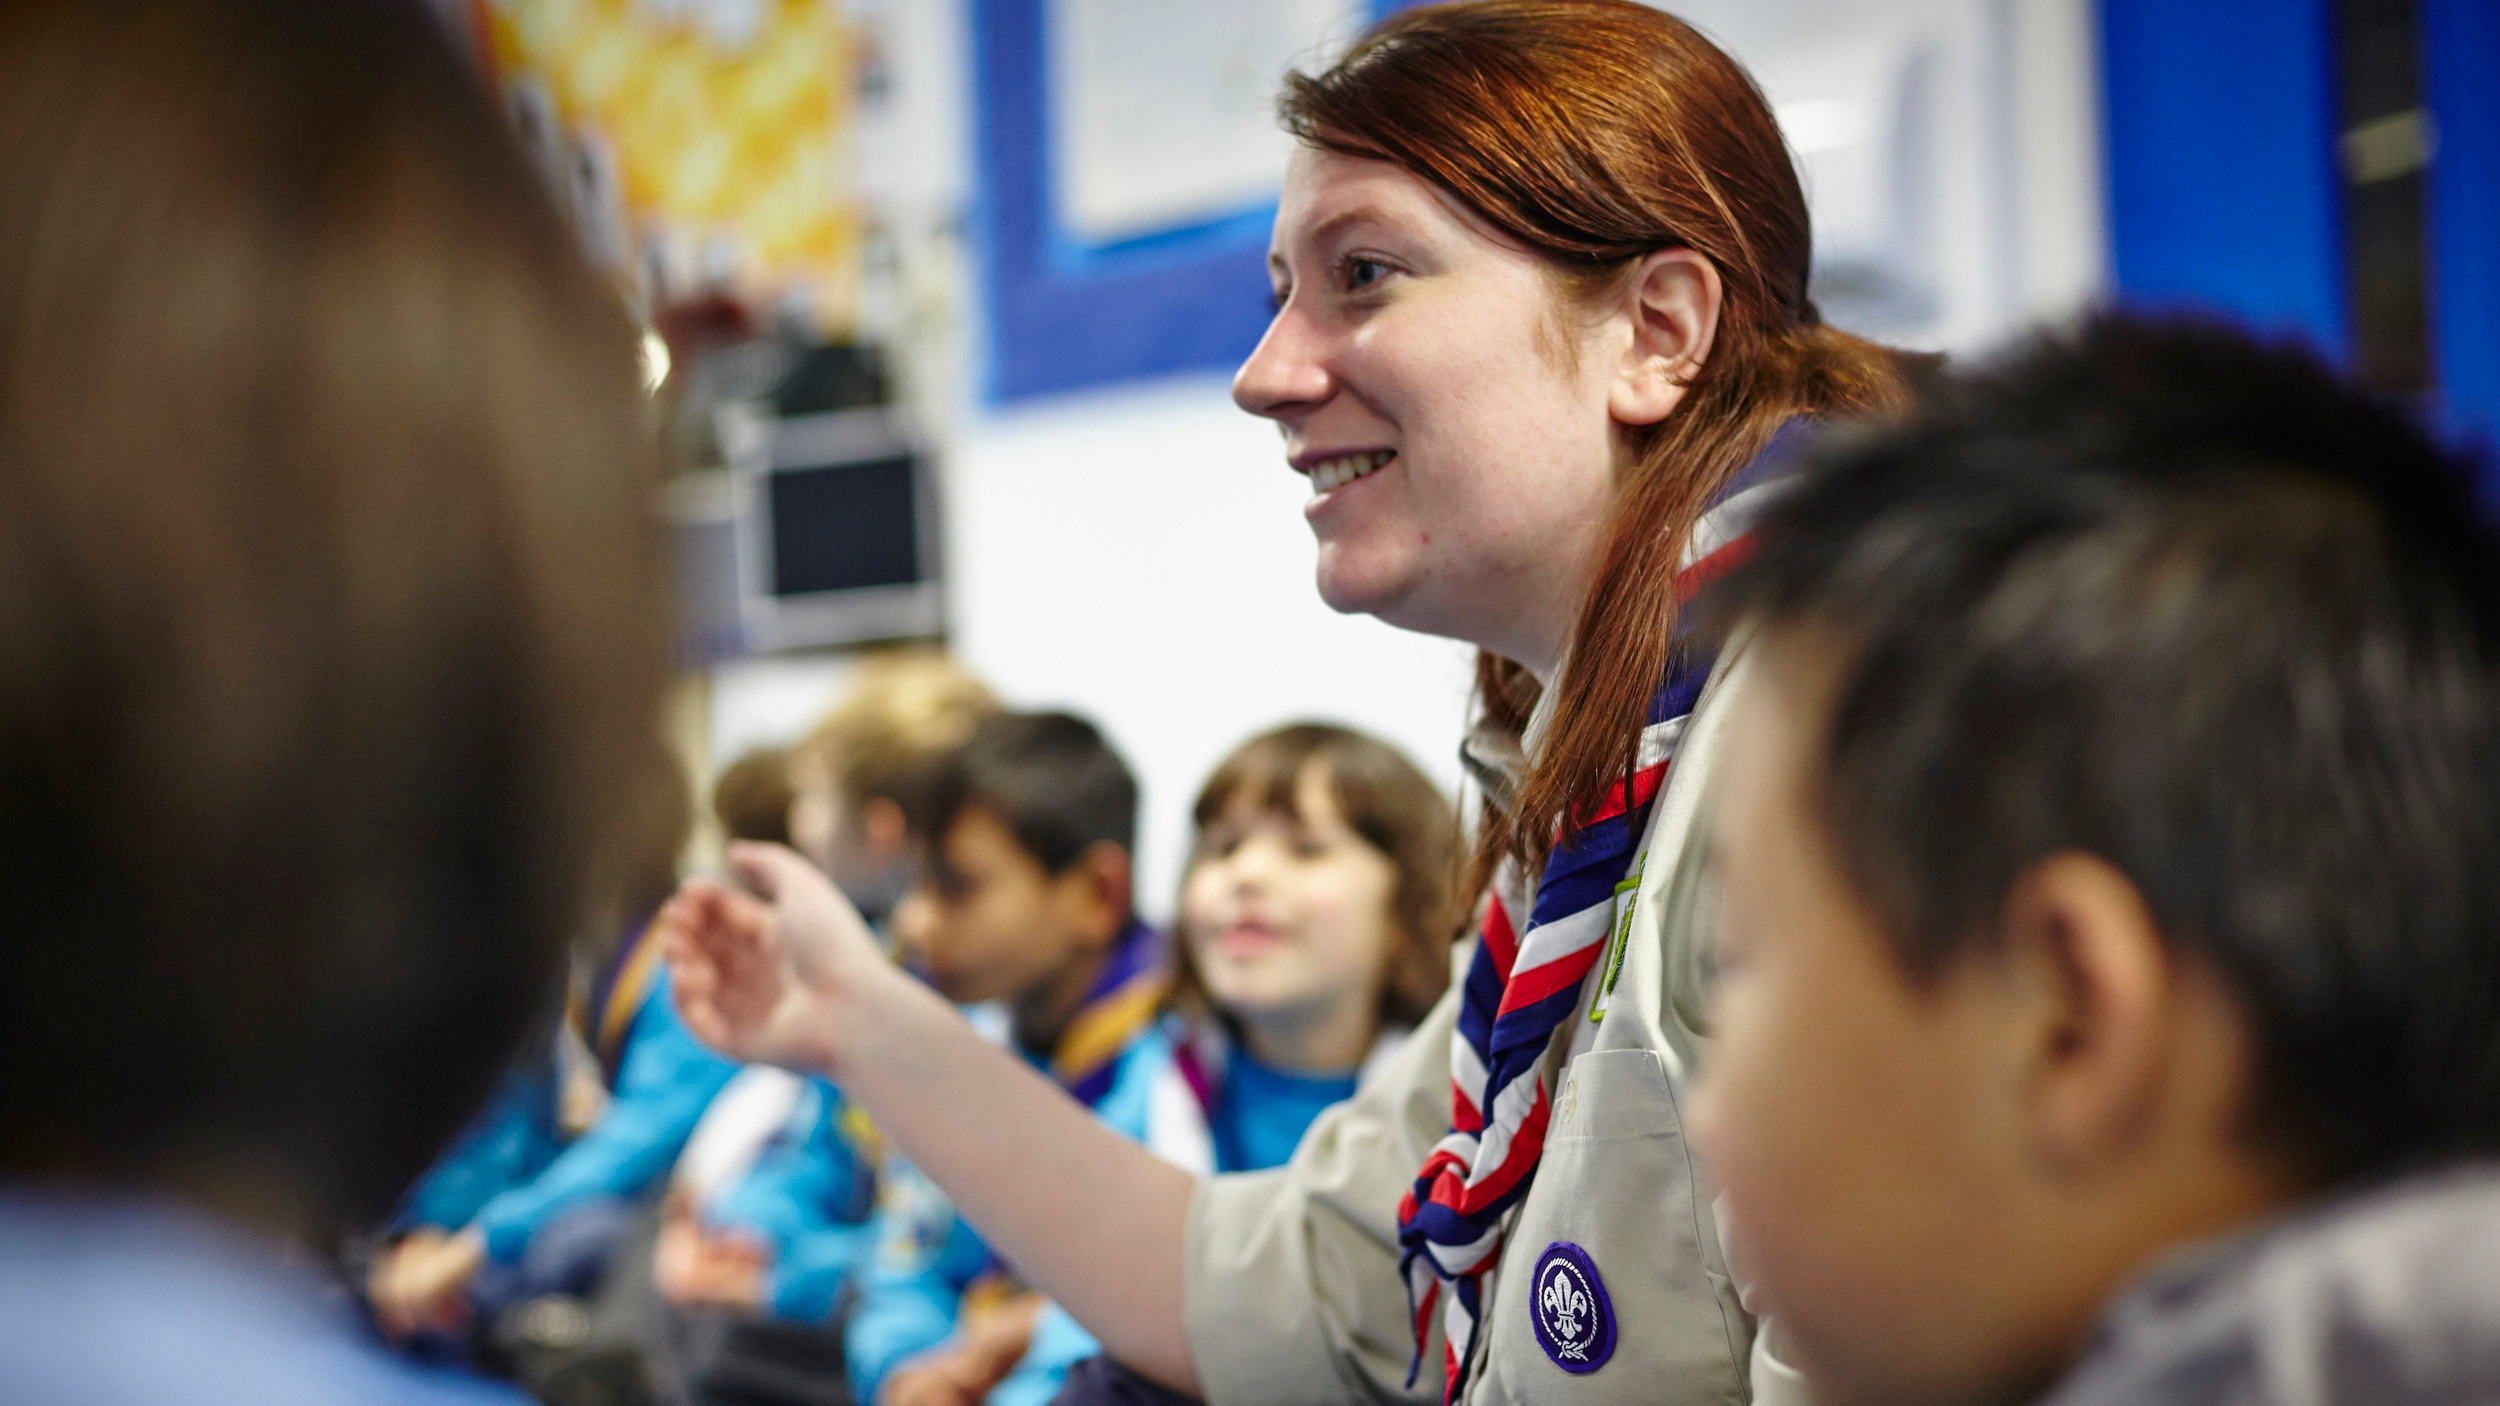 Cub Leaders - All of our leaders are trained volunteers, working to make sure Scouting is safe, inclusive and accessible. Some lead the Pack week in and week out. Others visit occasionally to help run a session or drop in to share their skills.